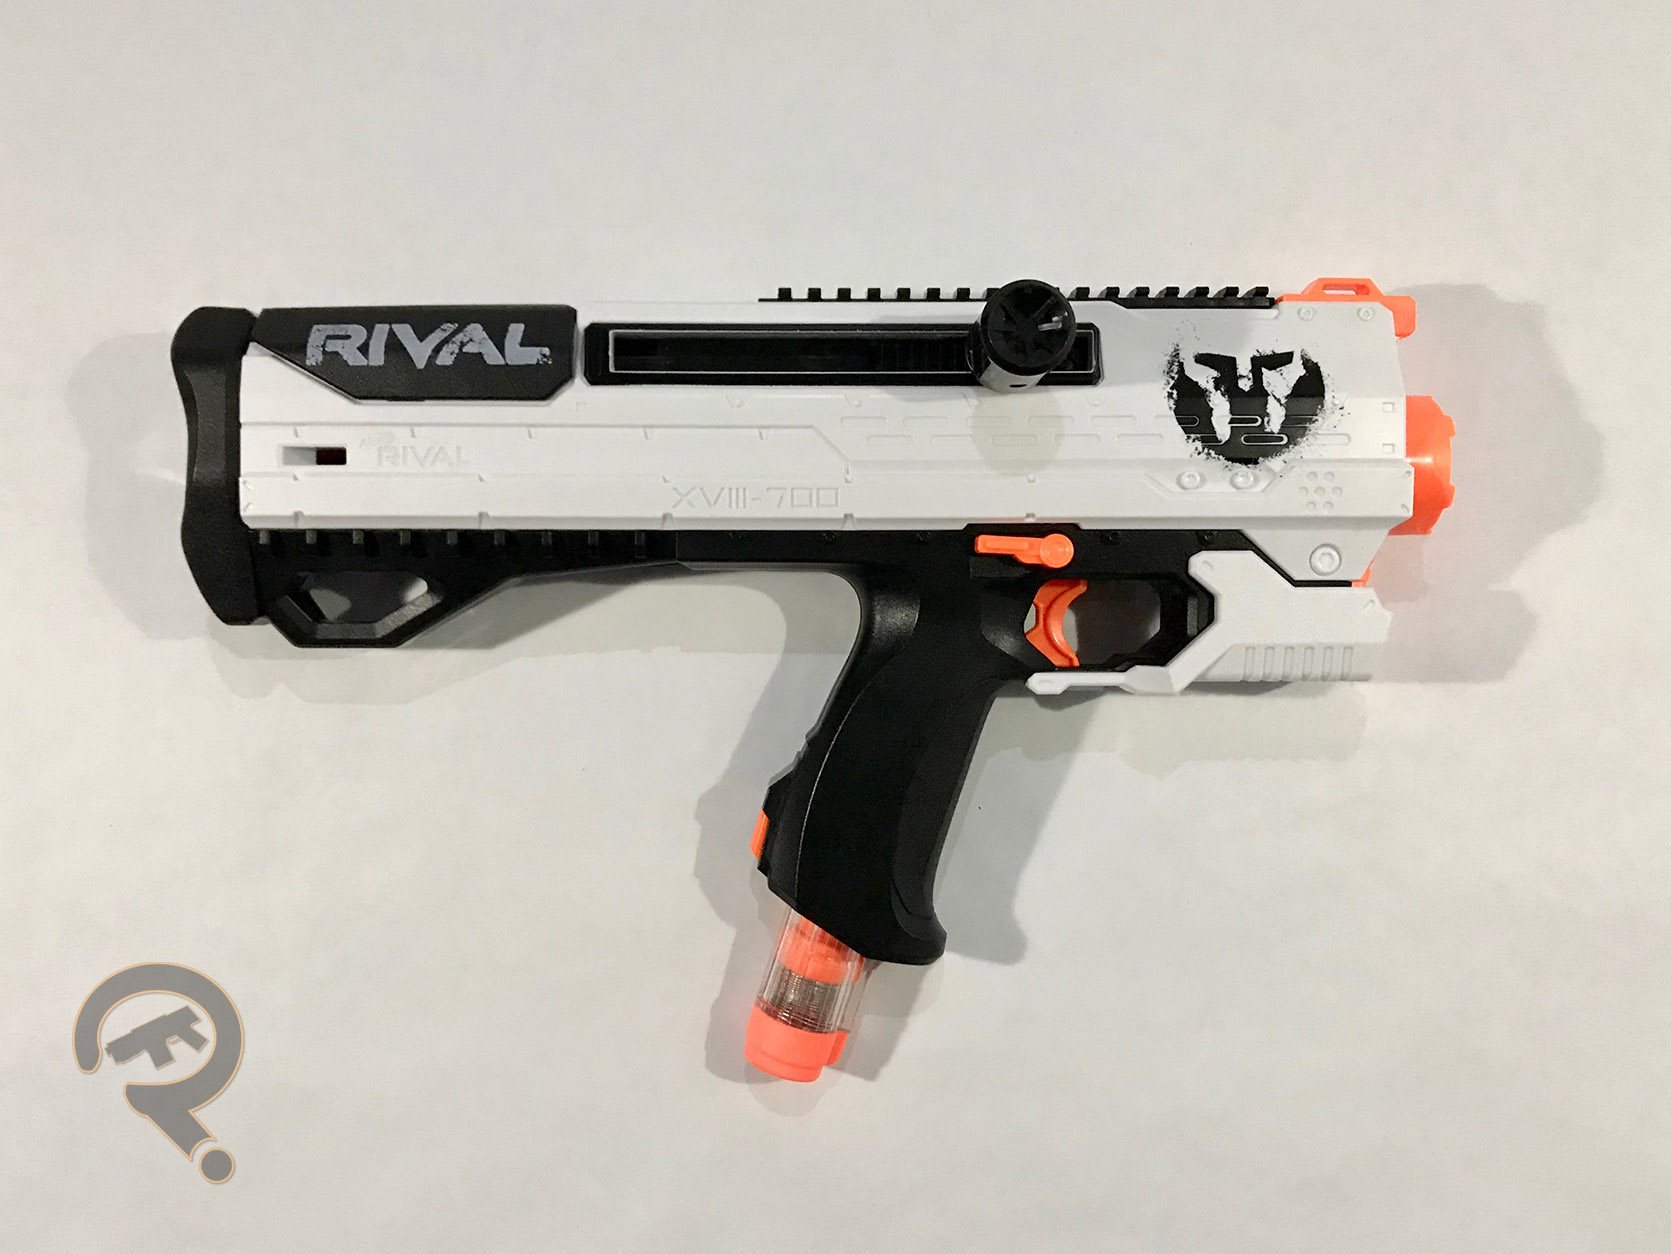 The Blaster In Question 0040 Helios XVIII 700